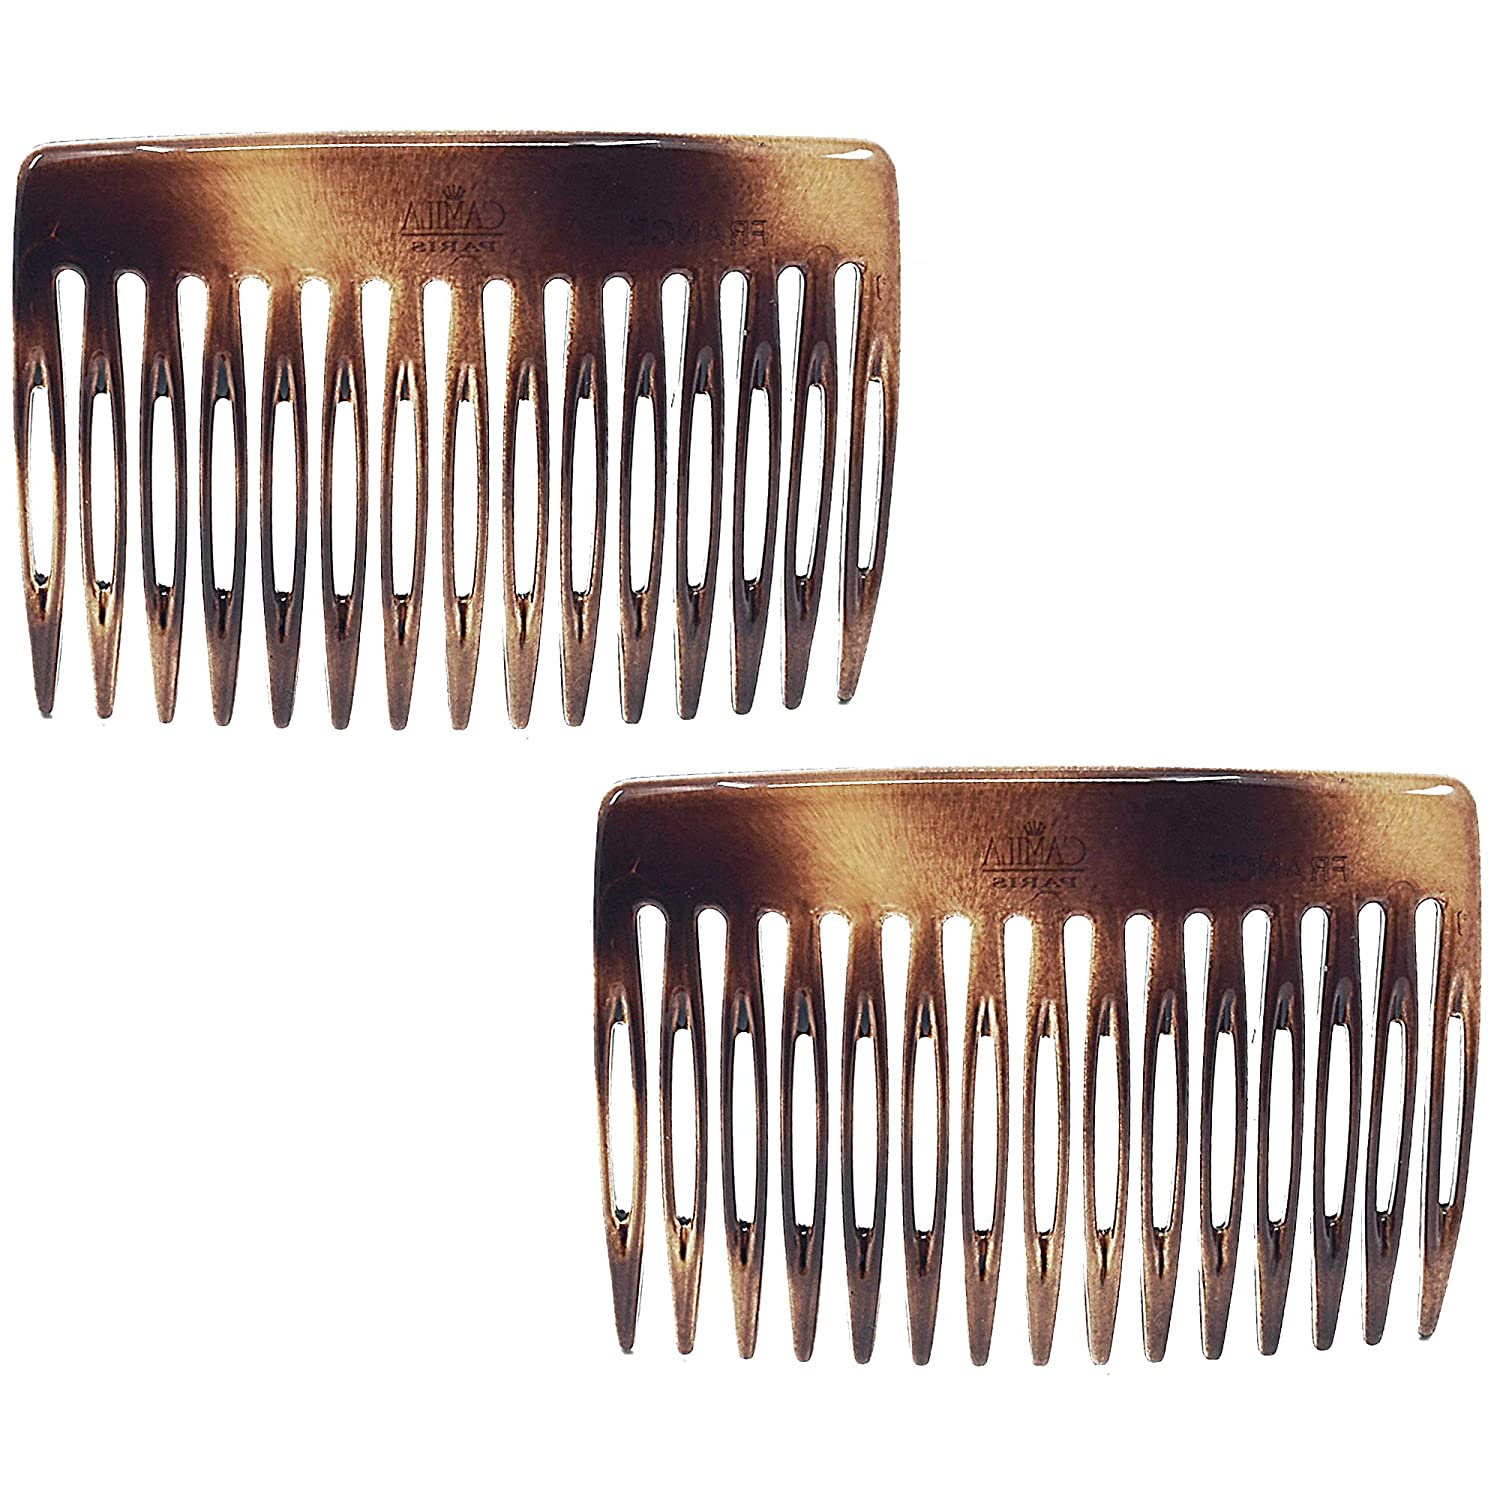 Camila Paris CP50/2 3 inch French Hair Side Combs Small Set of 2 Rounded, Flexible Durable Cellulose Hair Combs, Strong Hold Hair Clips for Women, No Slip Styling Girls Hair Accessories Made in France : Beauty